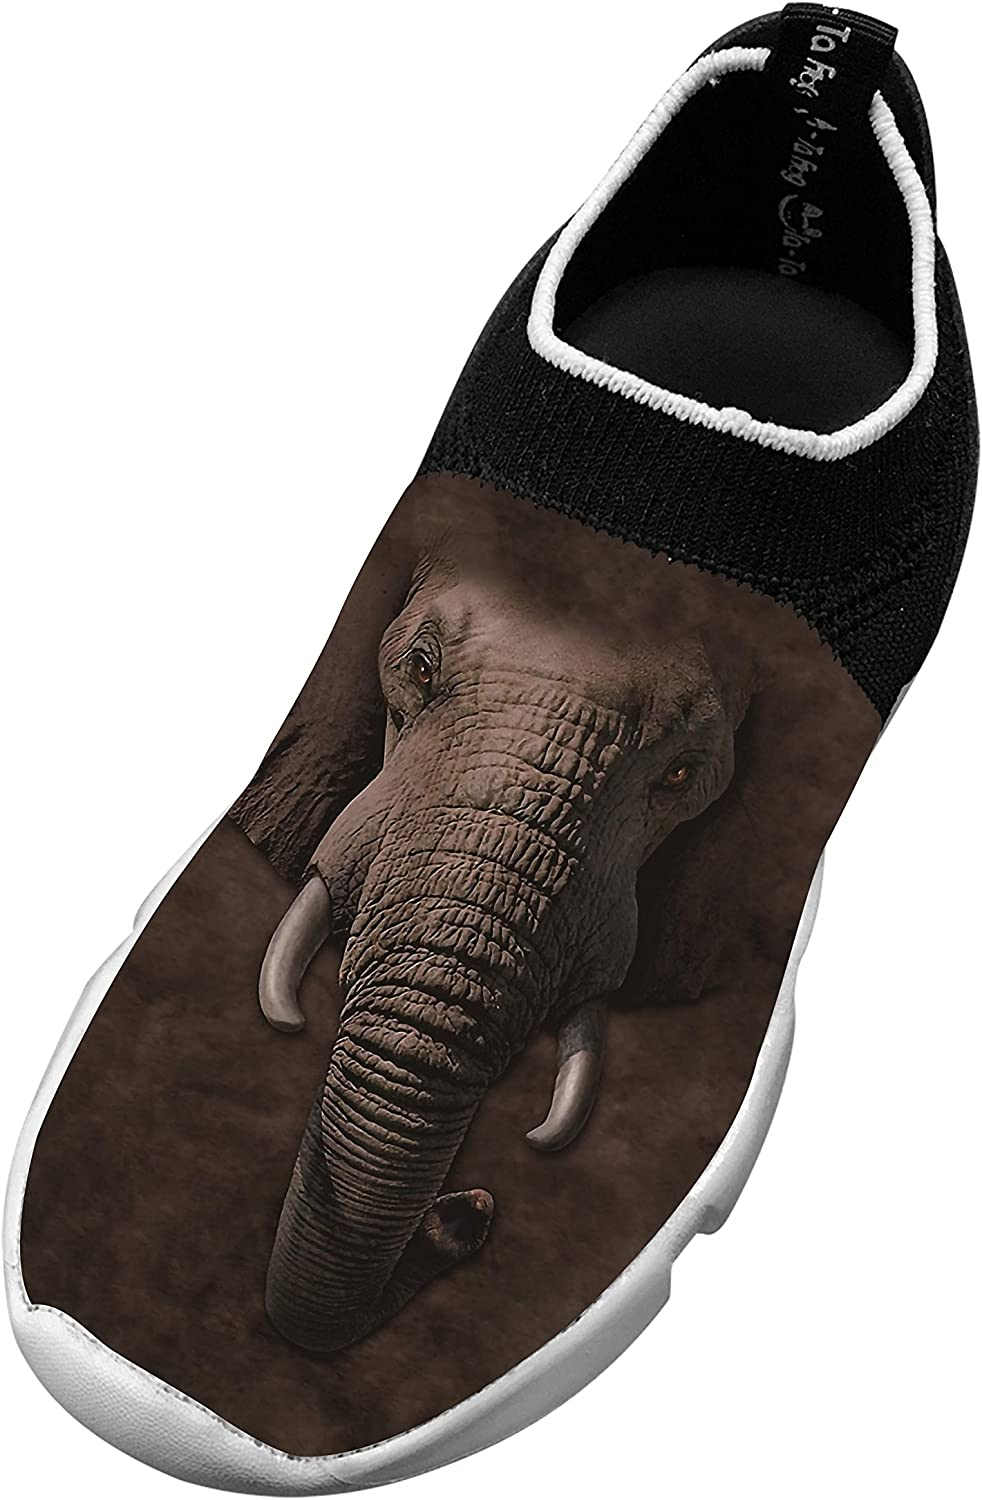 New Slim fit Flywire Weaving Jogging Shoes 3D Custome With Elephant For Unisex Kids